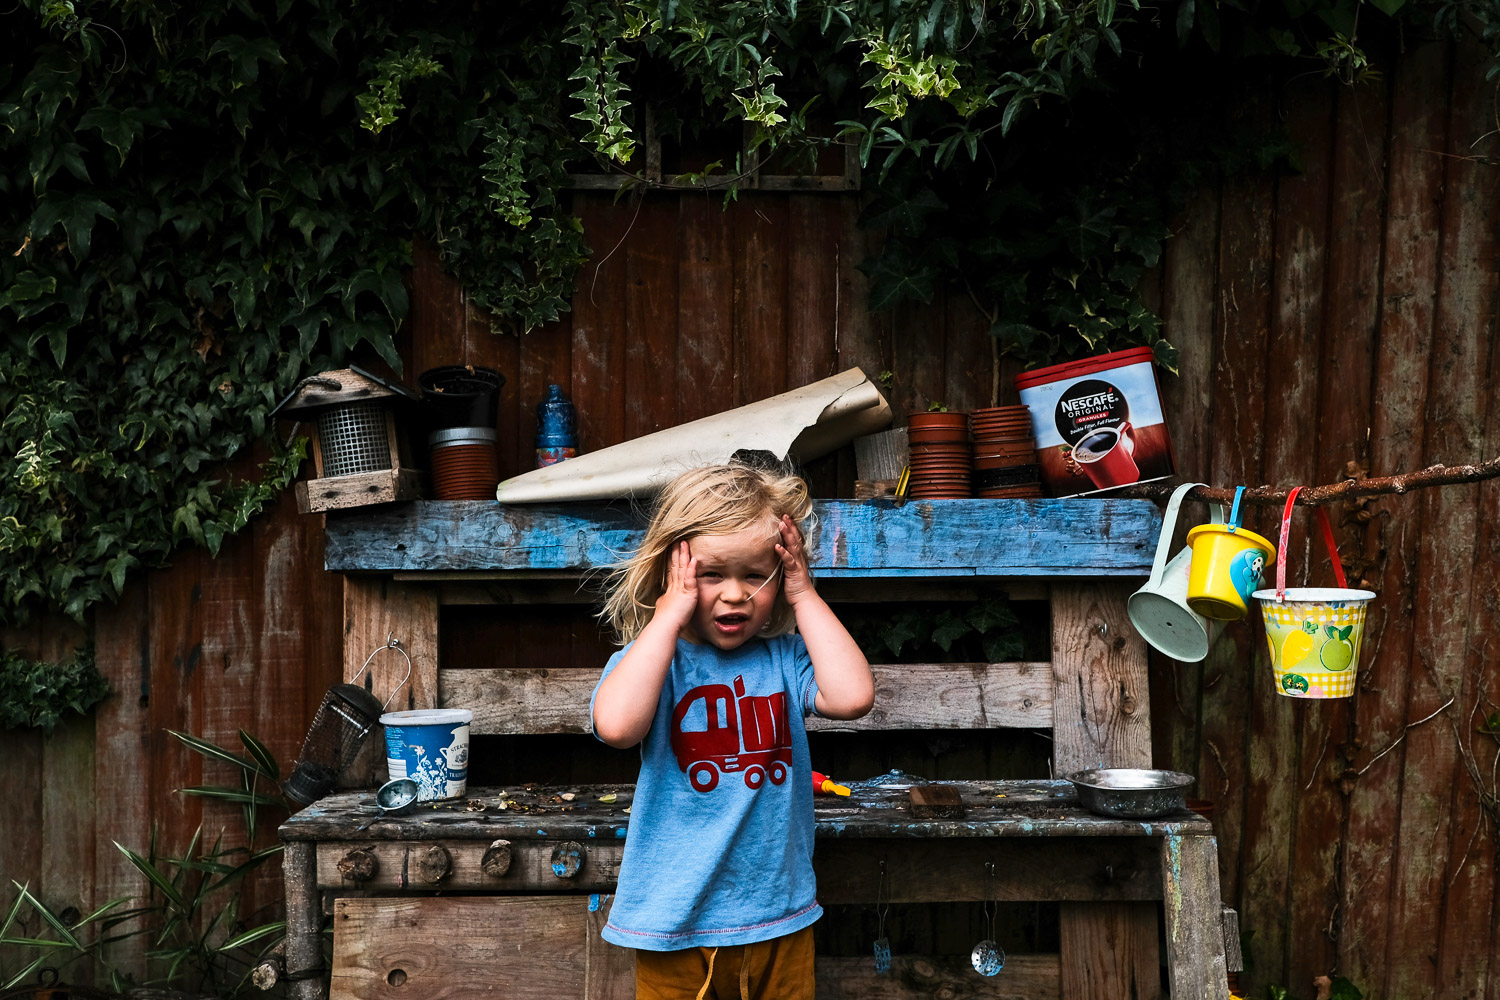 Environmental portrait of child in garden, clasping face with hands.